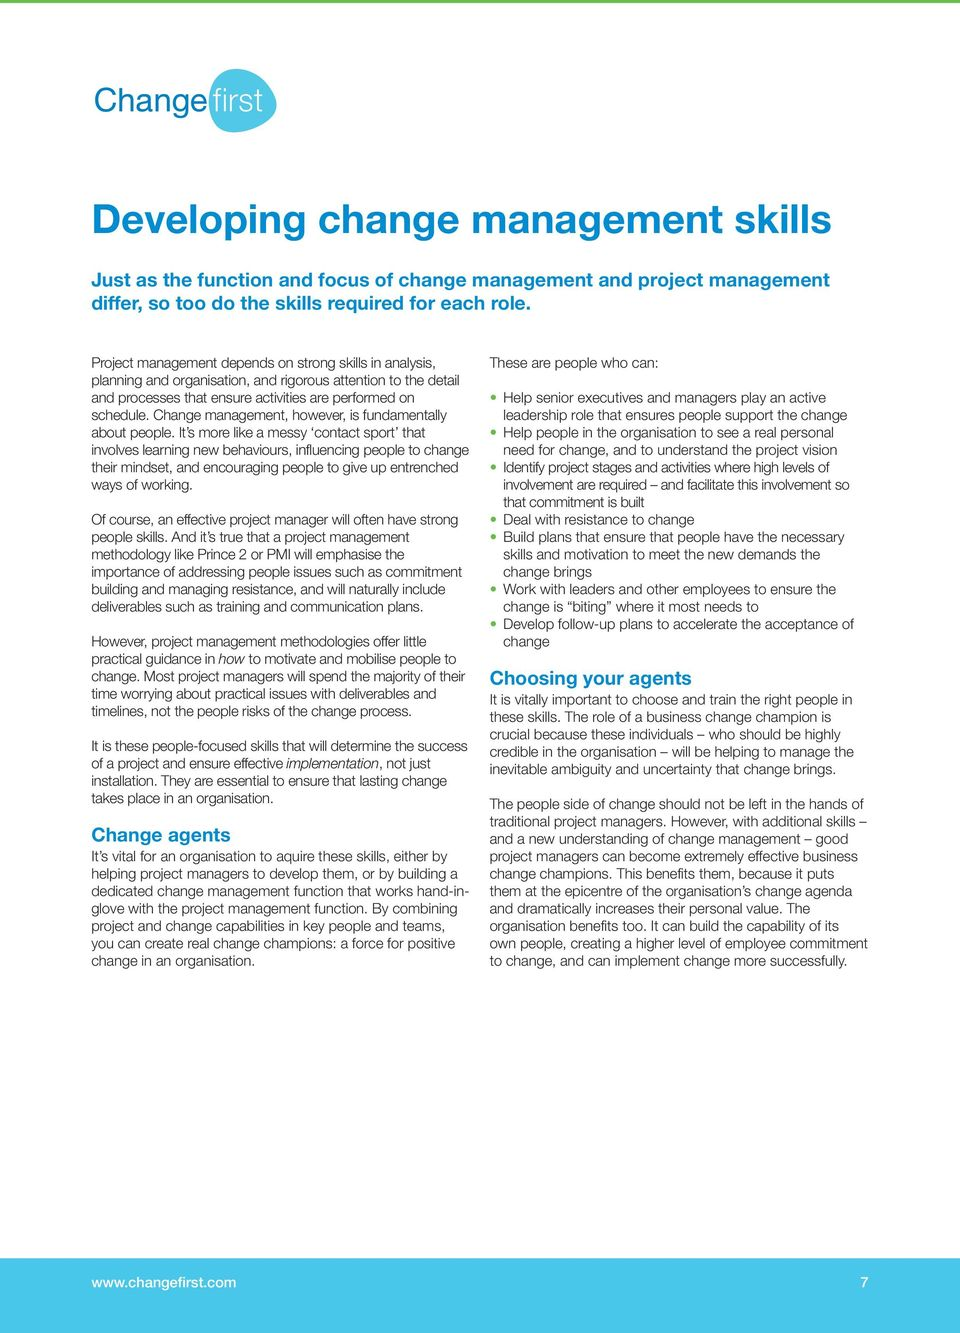 Change management, however, is fundamentally about people.